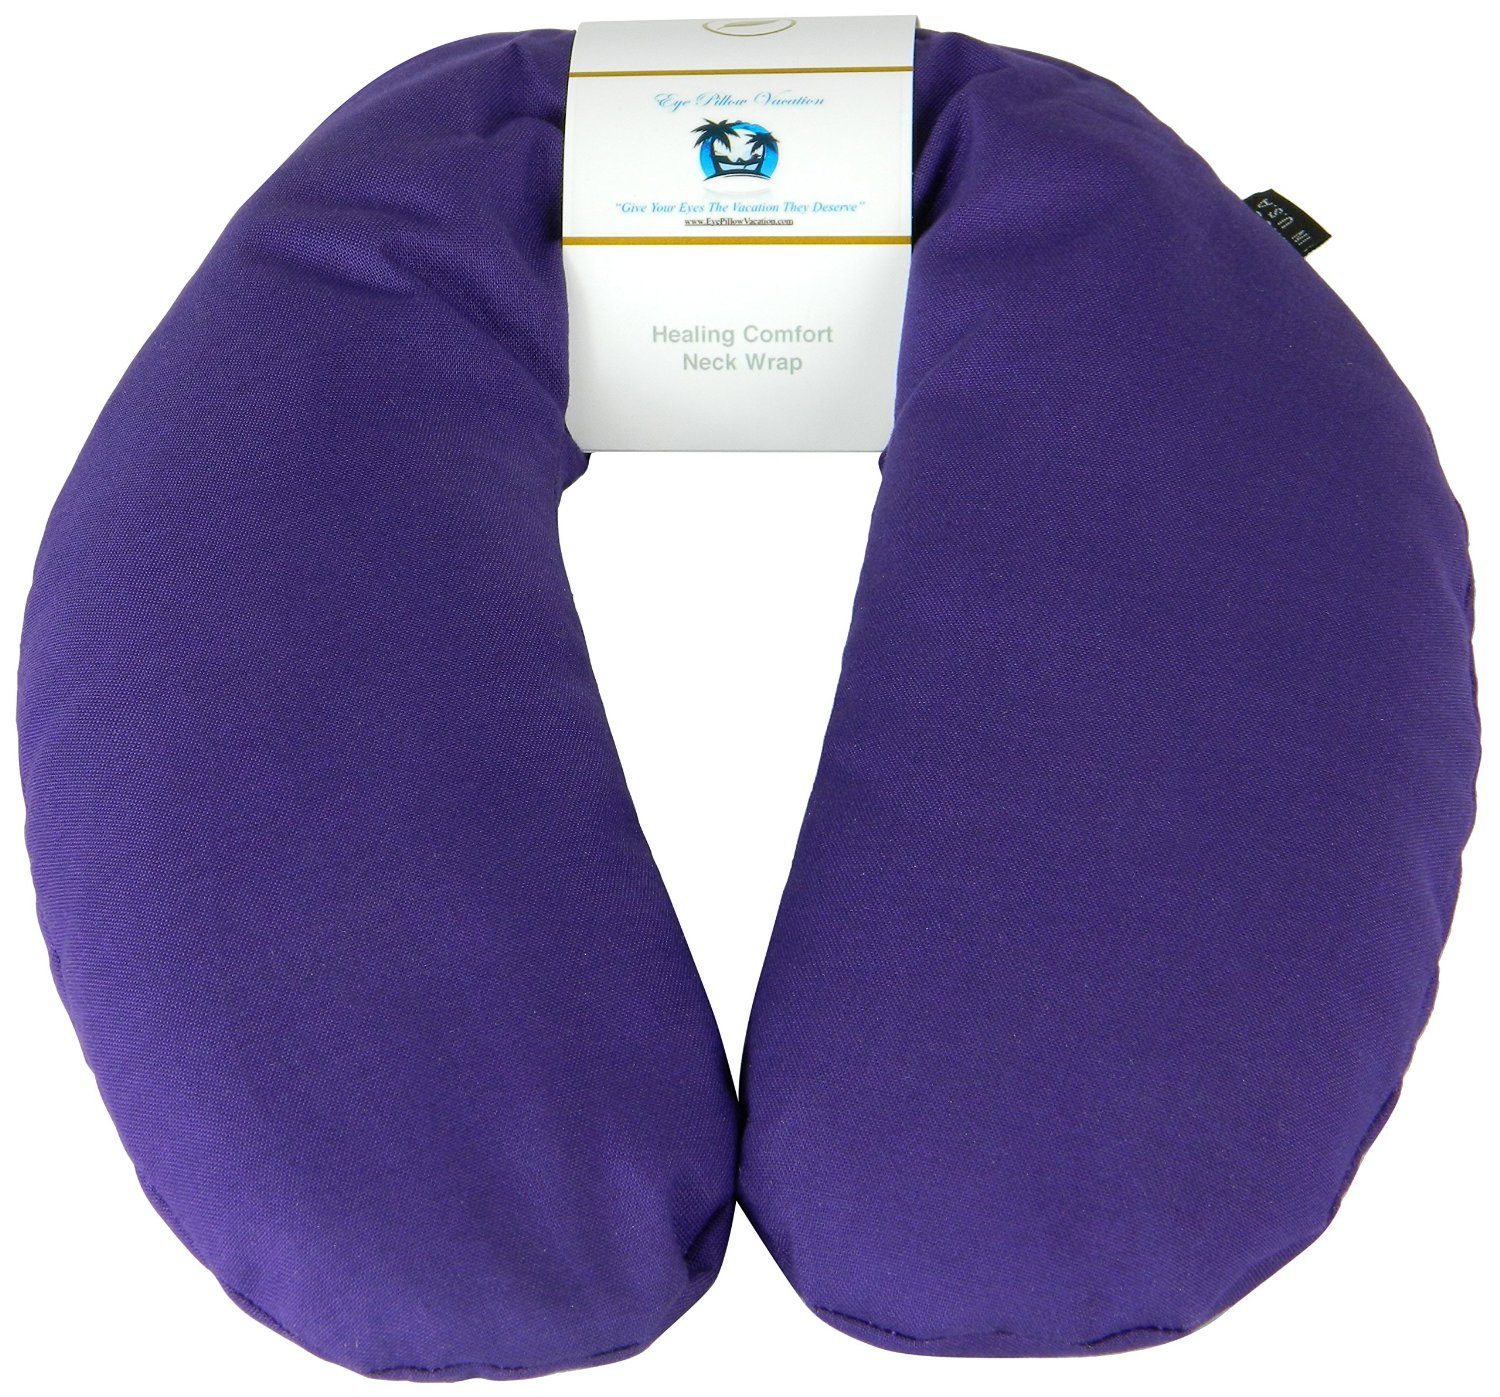 Neck Pain Relief Pillow - Hot & Cold Therapeutic Herbal Pillow For Shoulder and Neck Pain, Stress & Migraine Relief (Royal Purple - Organic Cotton)